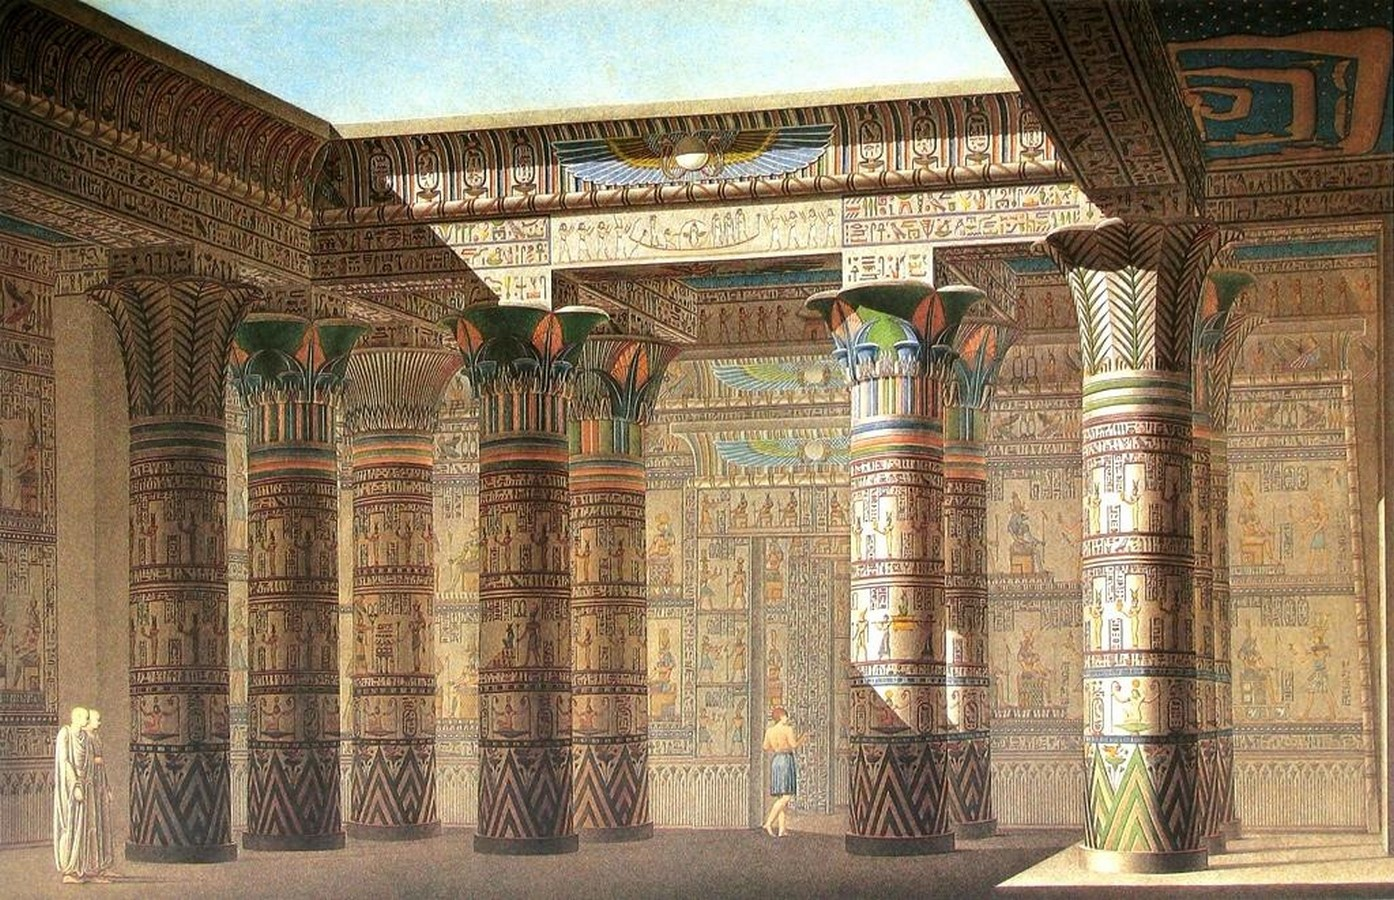 Egyptian Architecture was sustainable - Sheet2